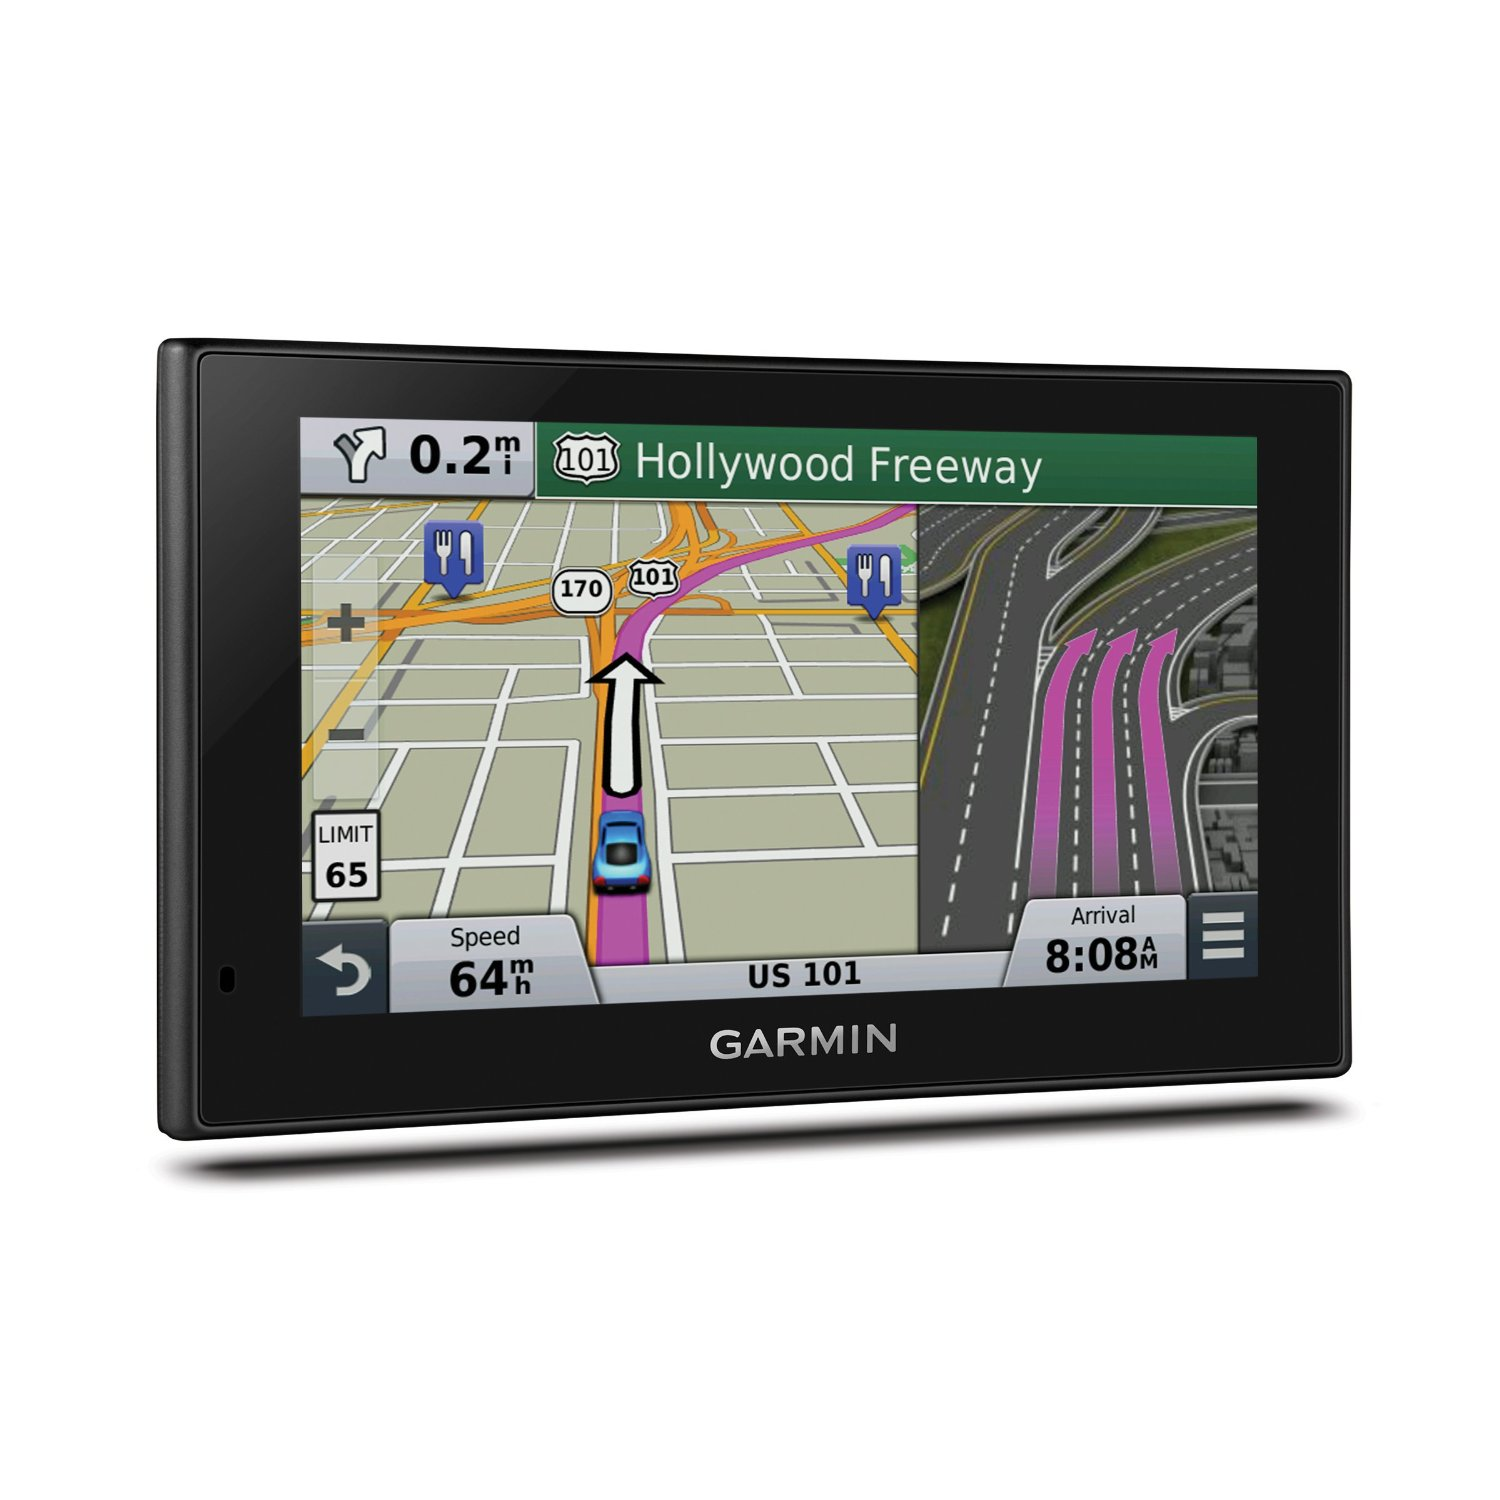 Garmin Nuvi 2589LMT North America gps review